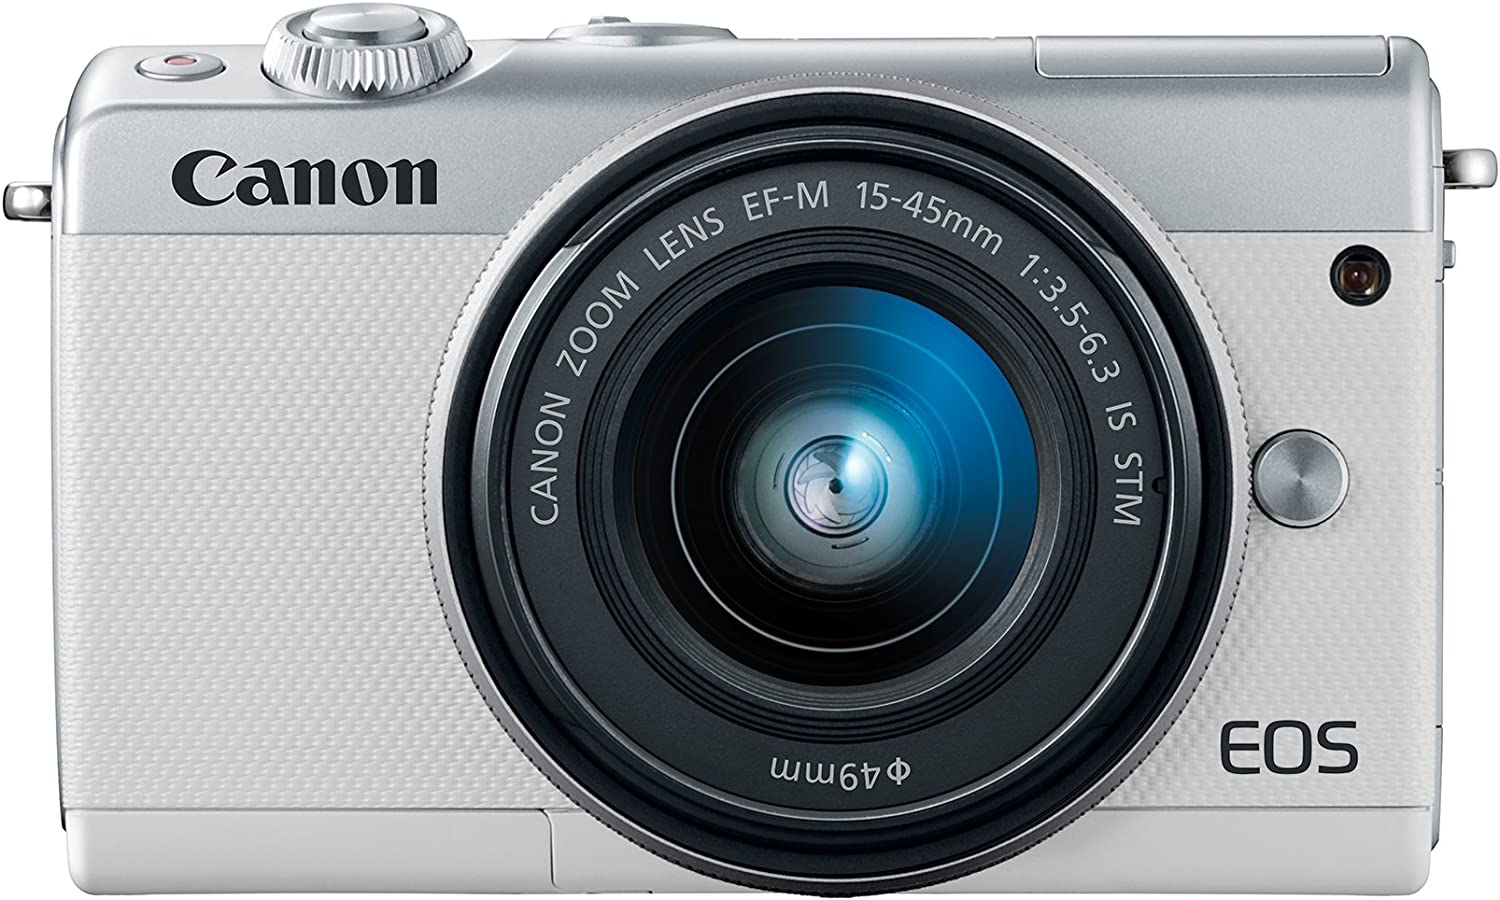 Canon EOS M100 Mirrorless Camera w/ 15-45mm Lens - Wi-Fi, Bluetooth, and NFC Enabled (White)